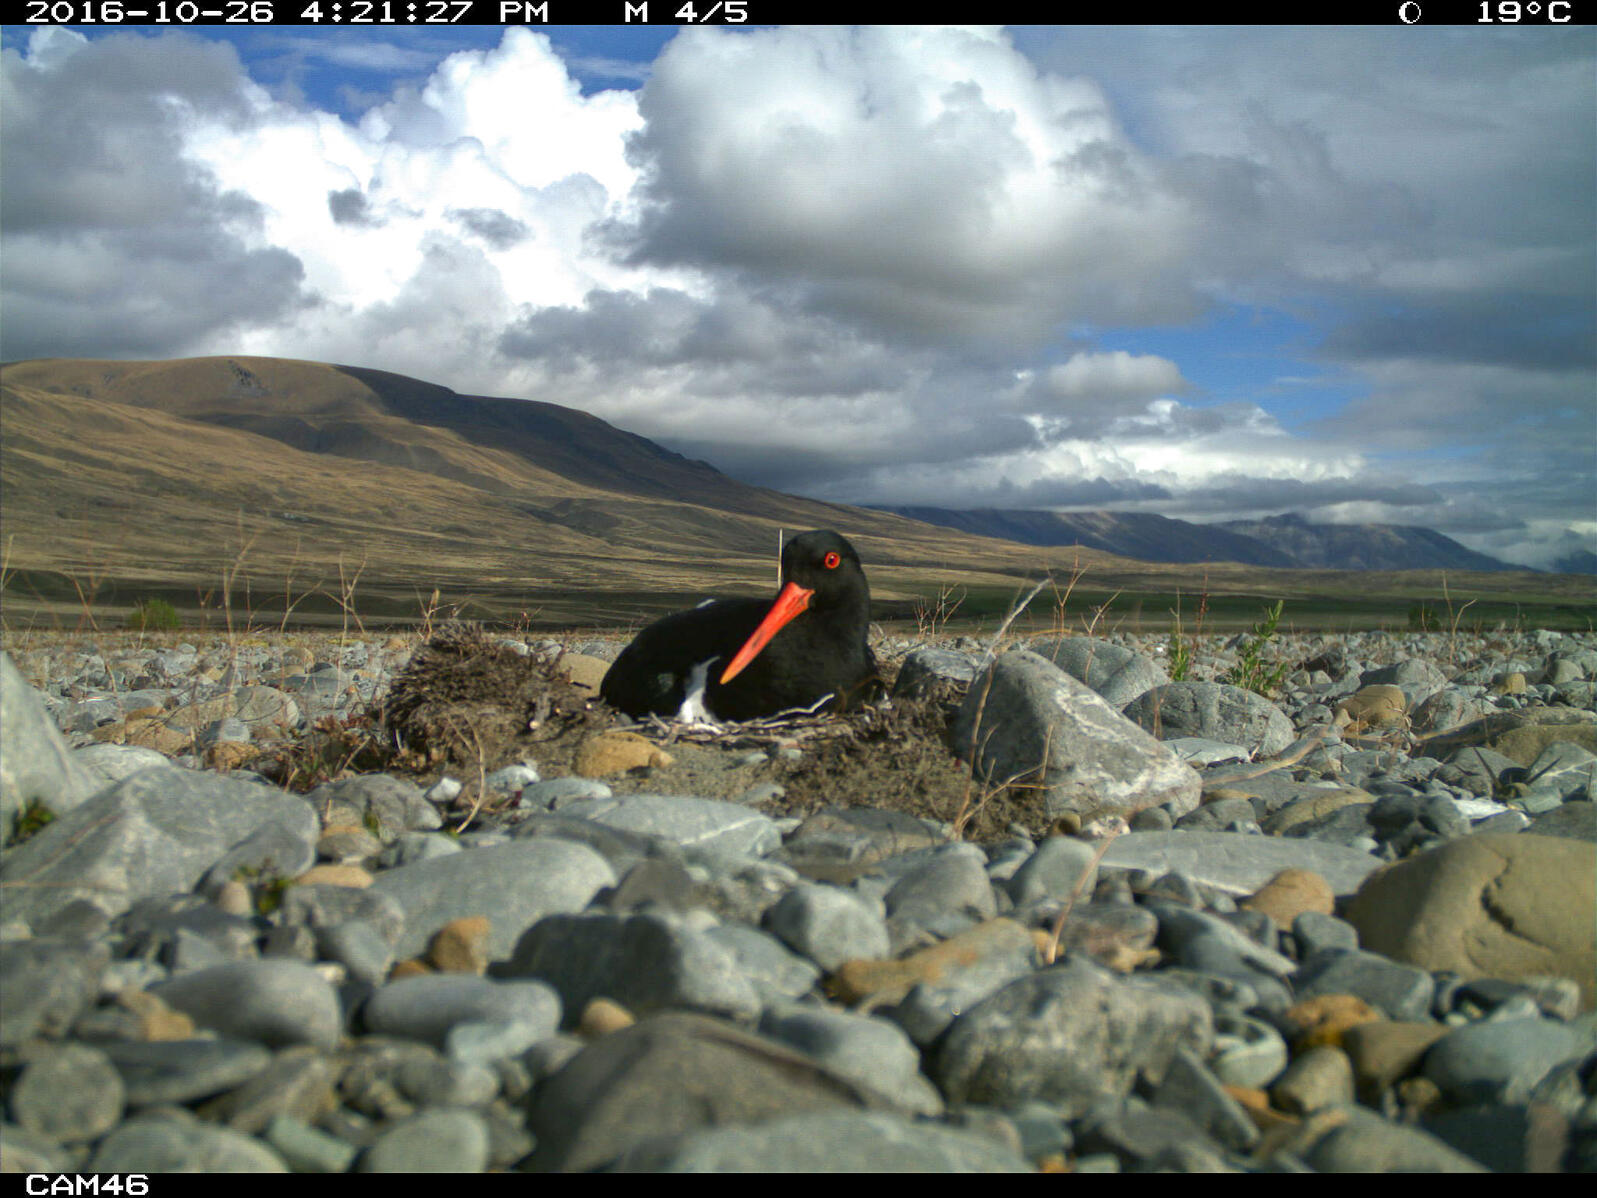 South Island Pied Oystercatcher sitting on its nest. Manaaki Whenua Landcare Research